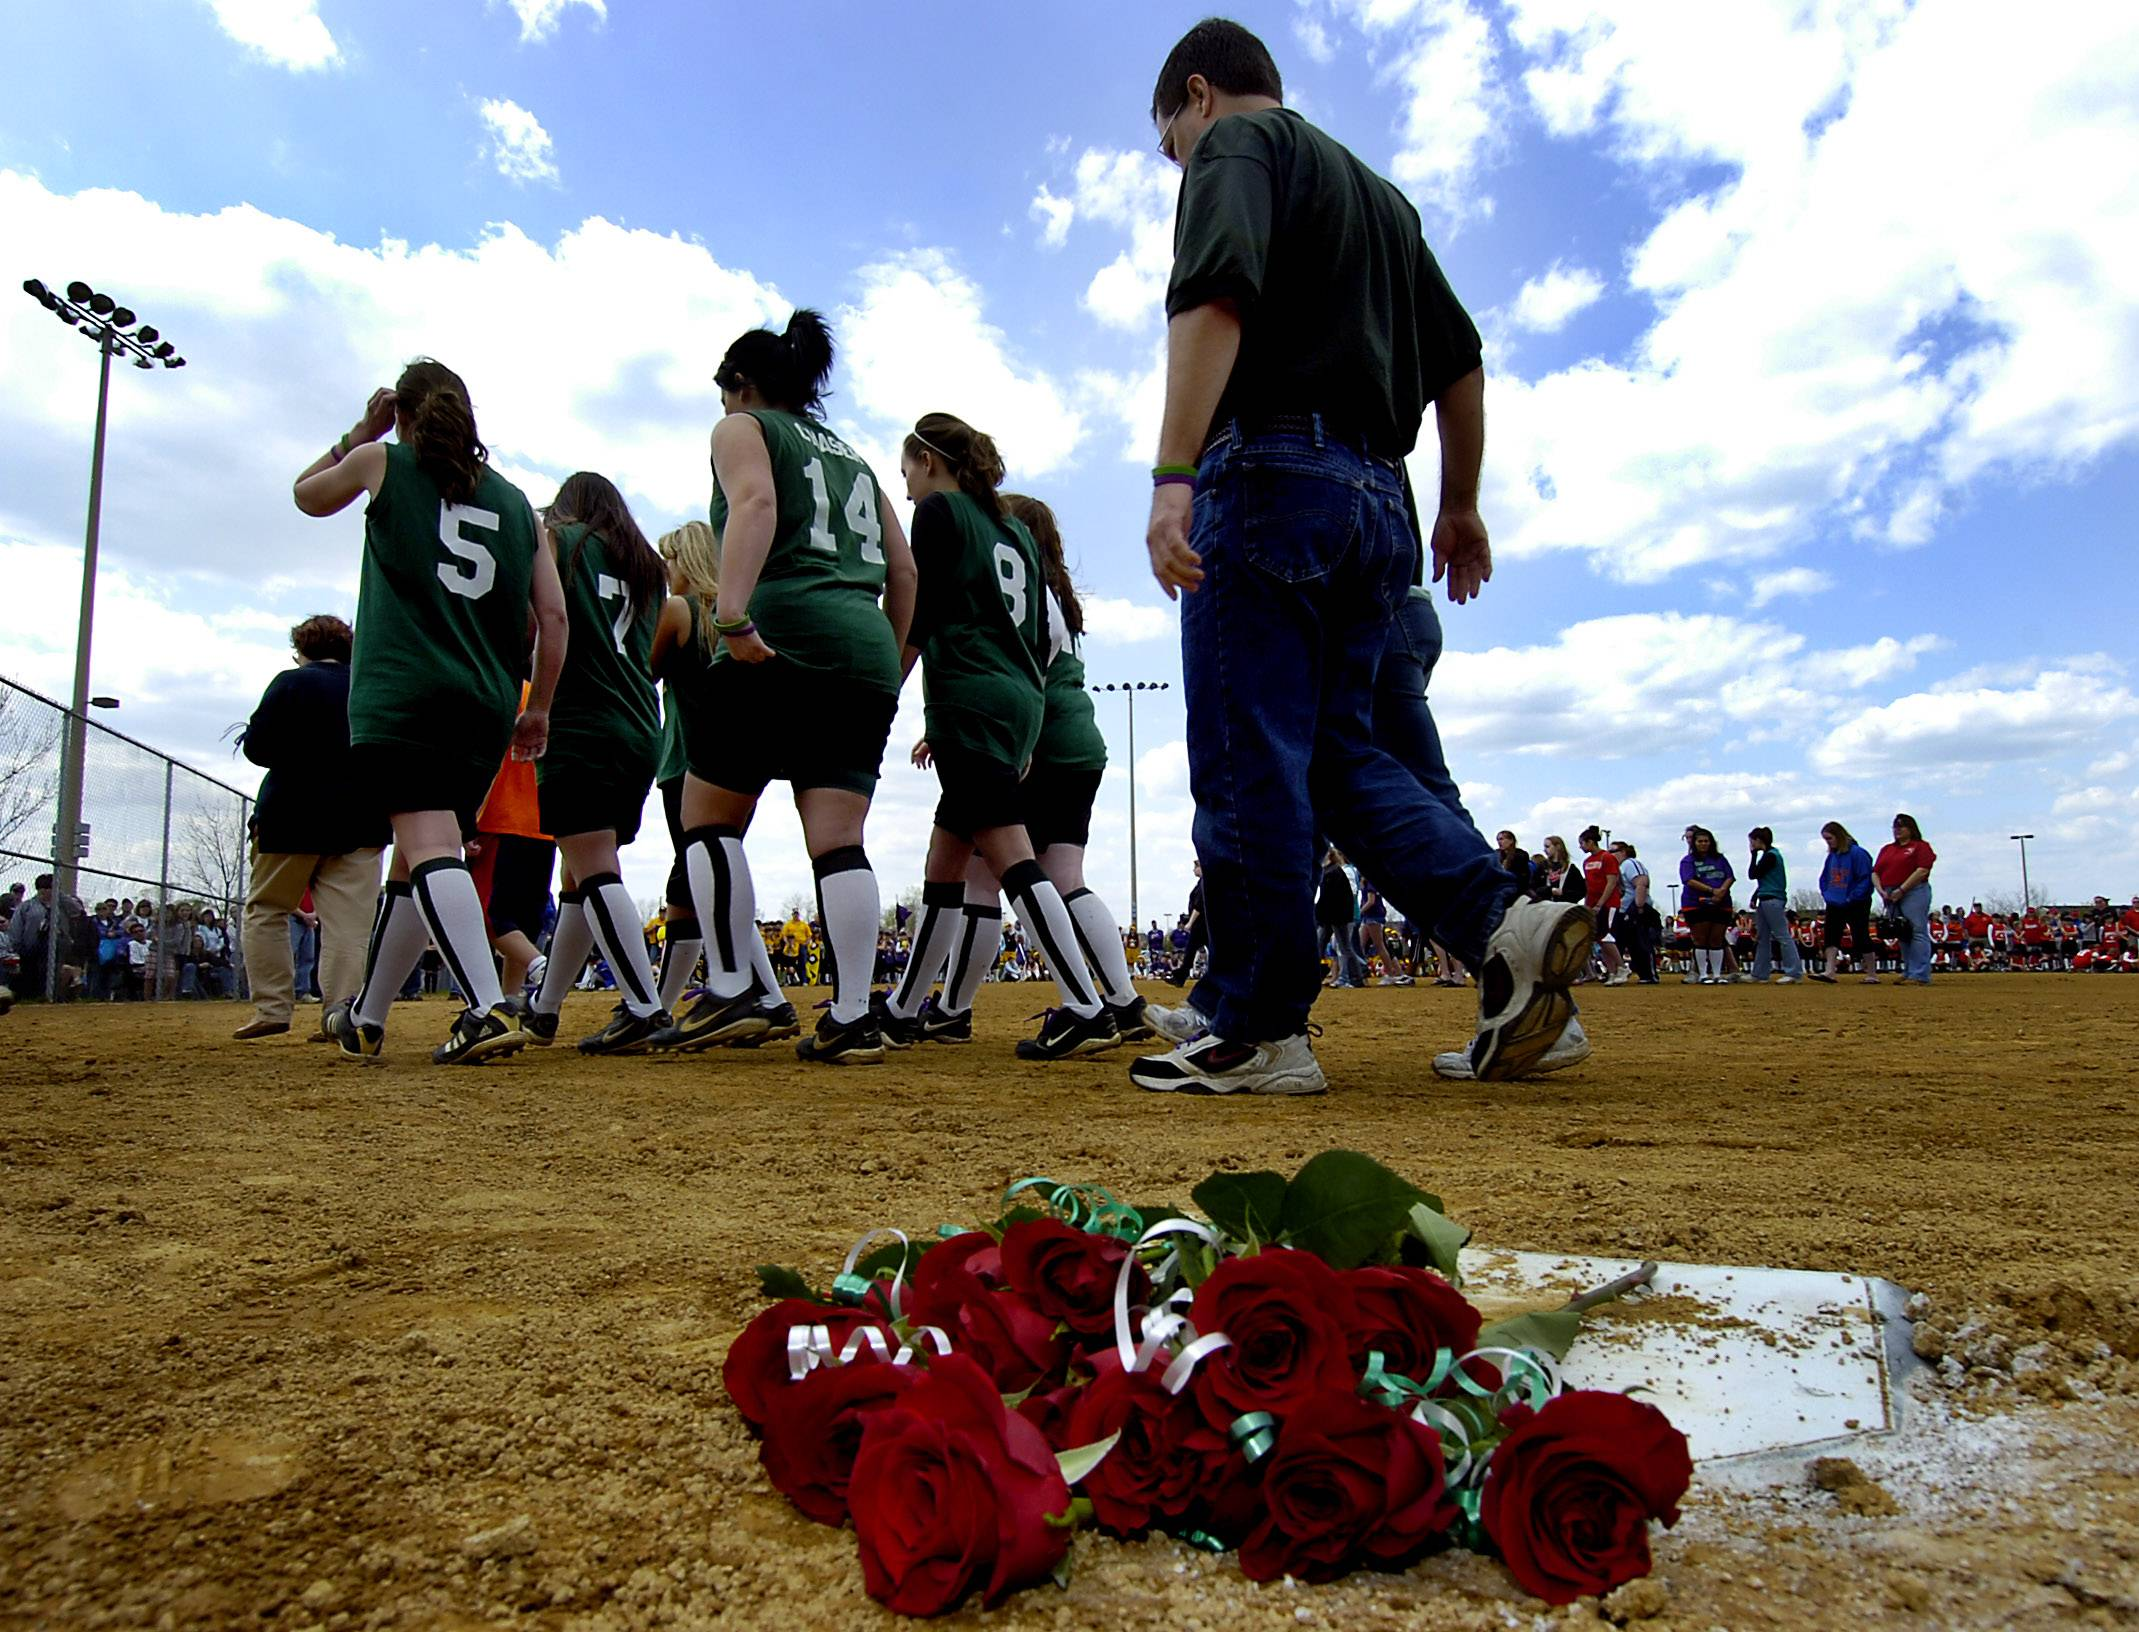 Roses are left at home plate in honor of Laura Engelhardt, star catcher and member of the Blizzard softball team, as her teammates and coach walk away during a tribute held at the 2009 opening ceremony of the league. Laura was killed April 17, 2009.